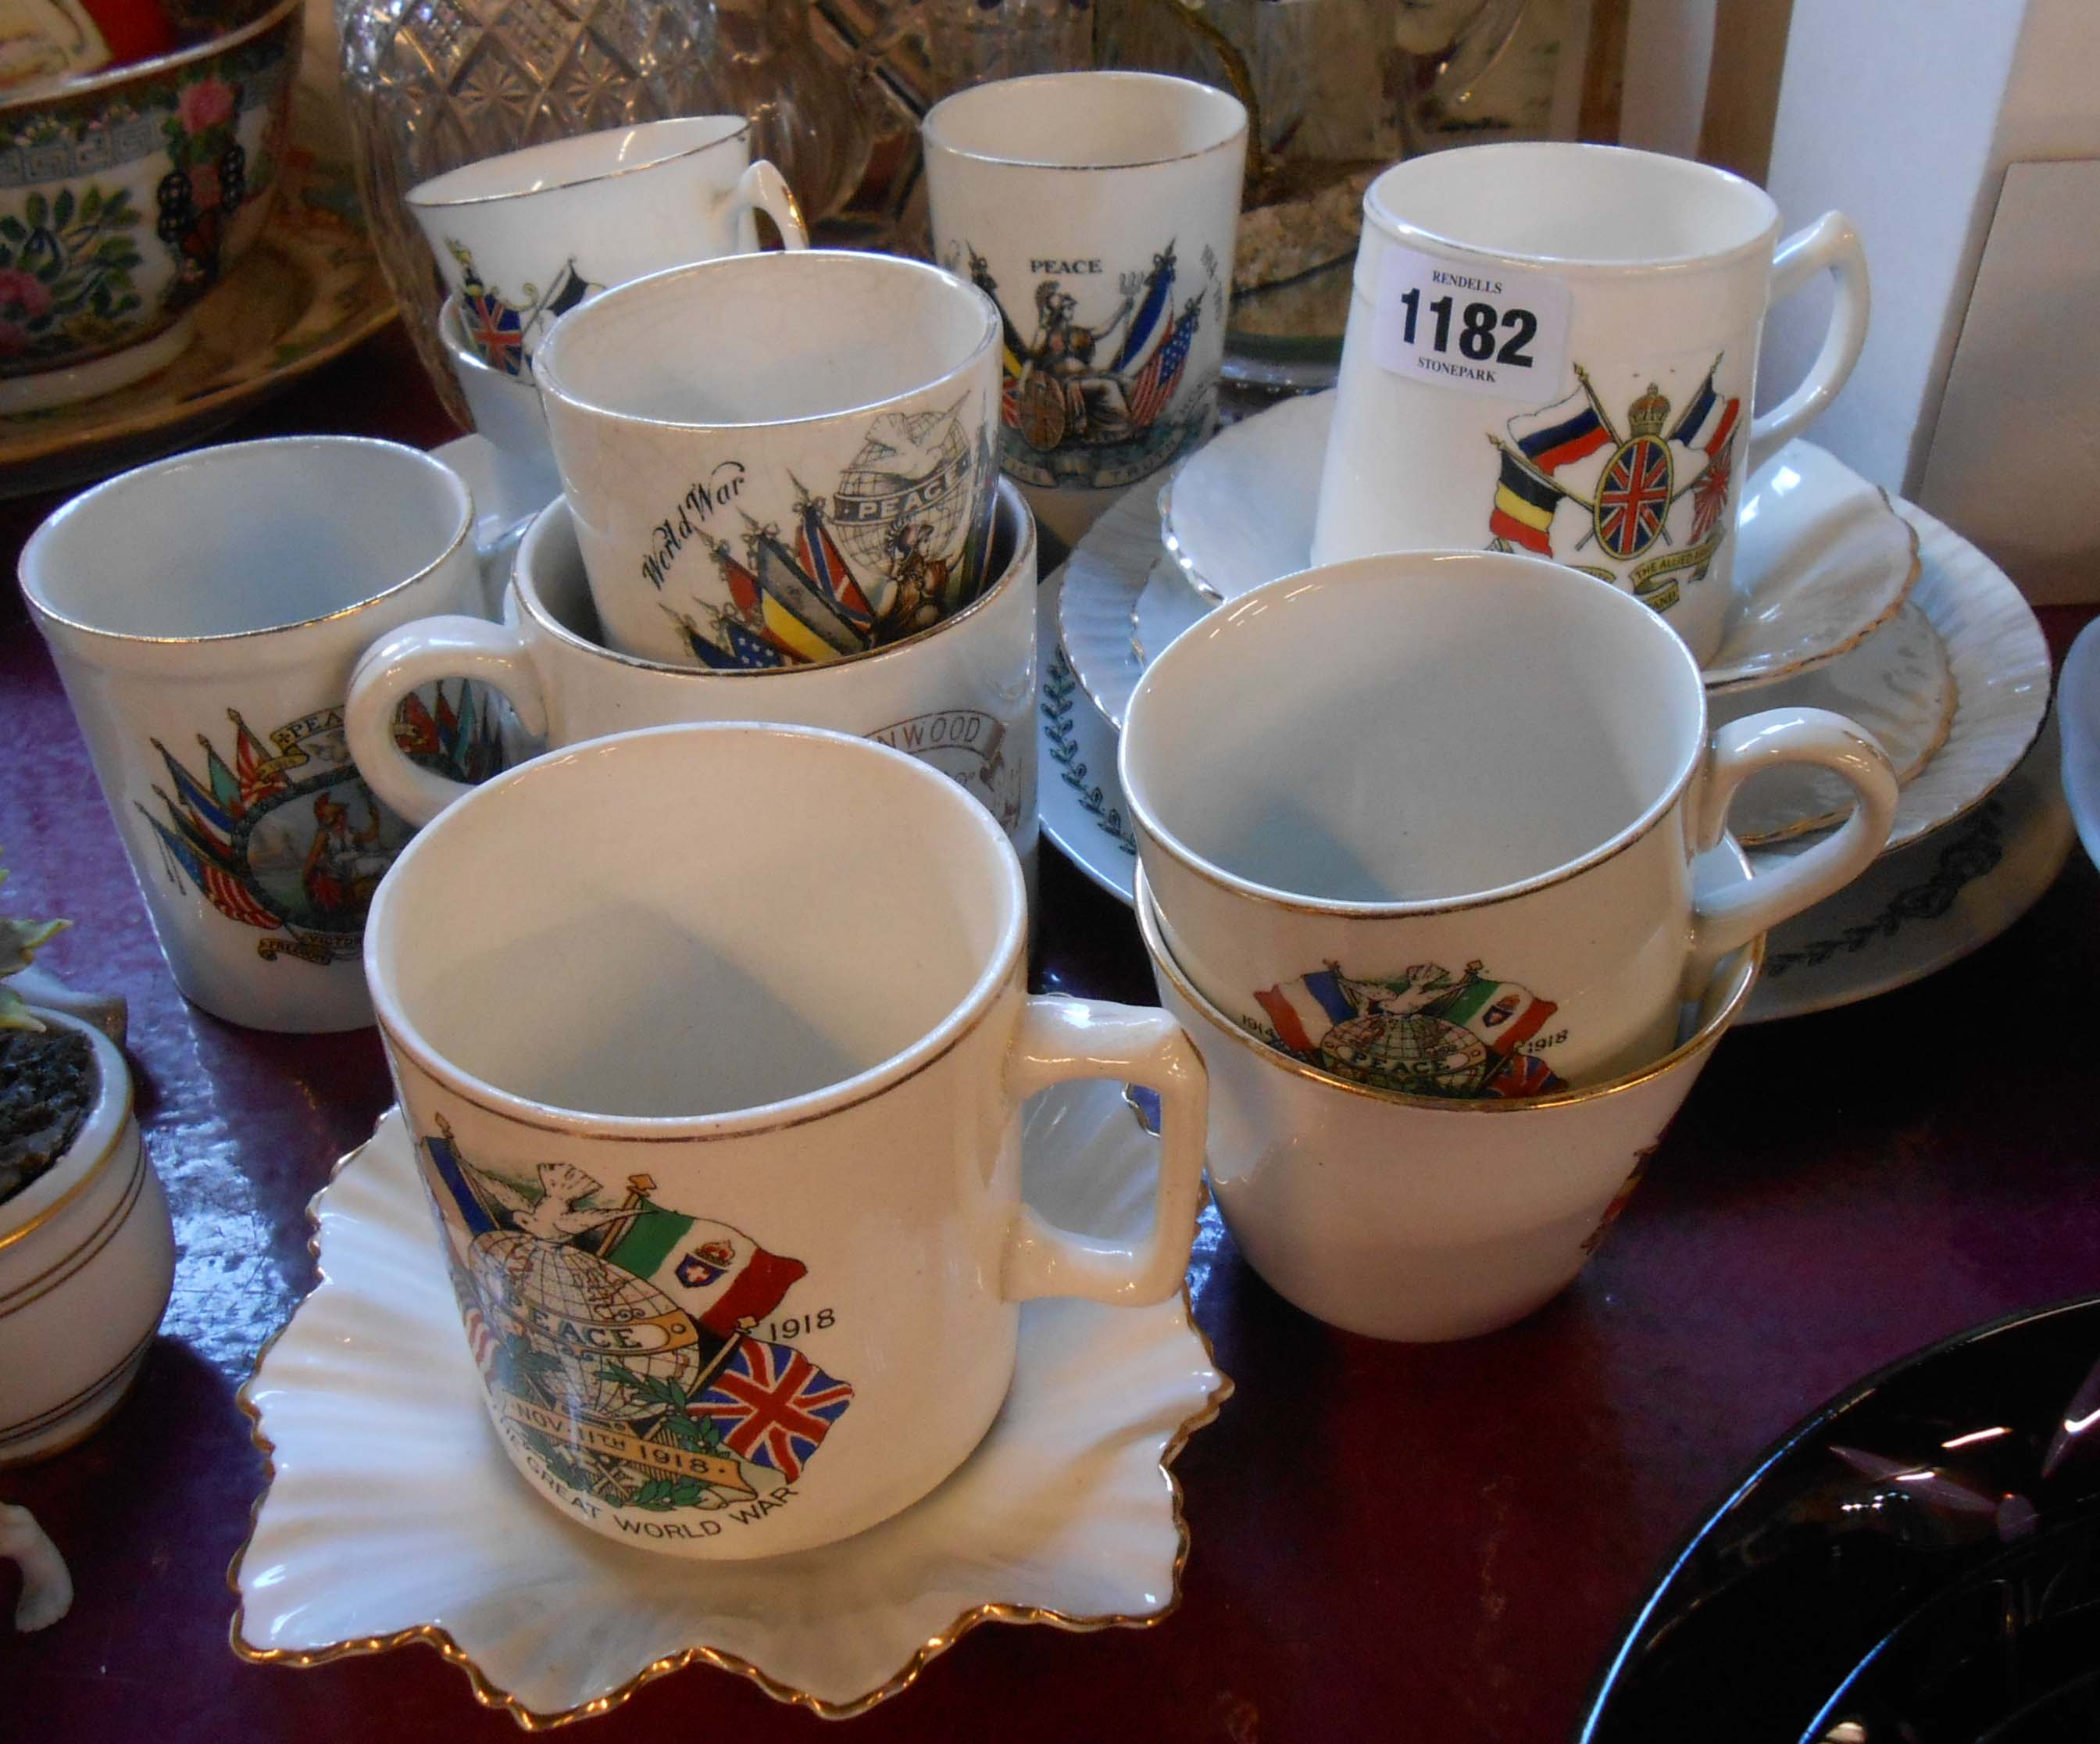 A selection of ceramic items made to commemorate the end of WWI in 1918 including mugs, plates,